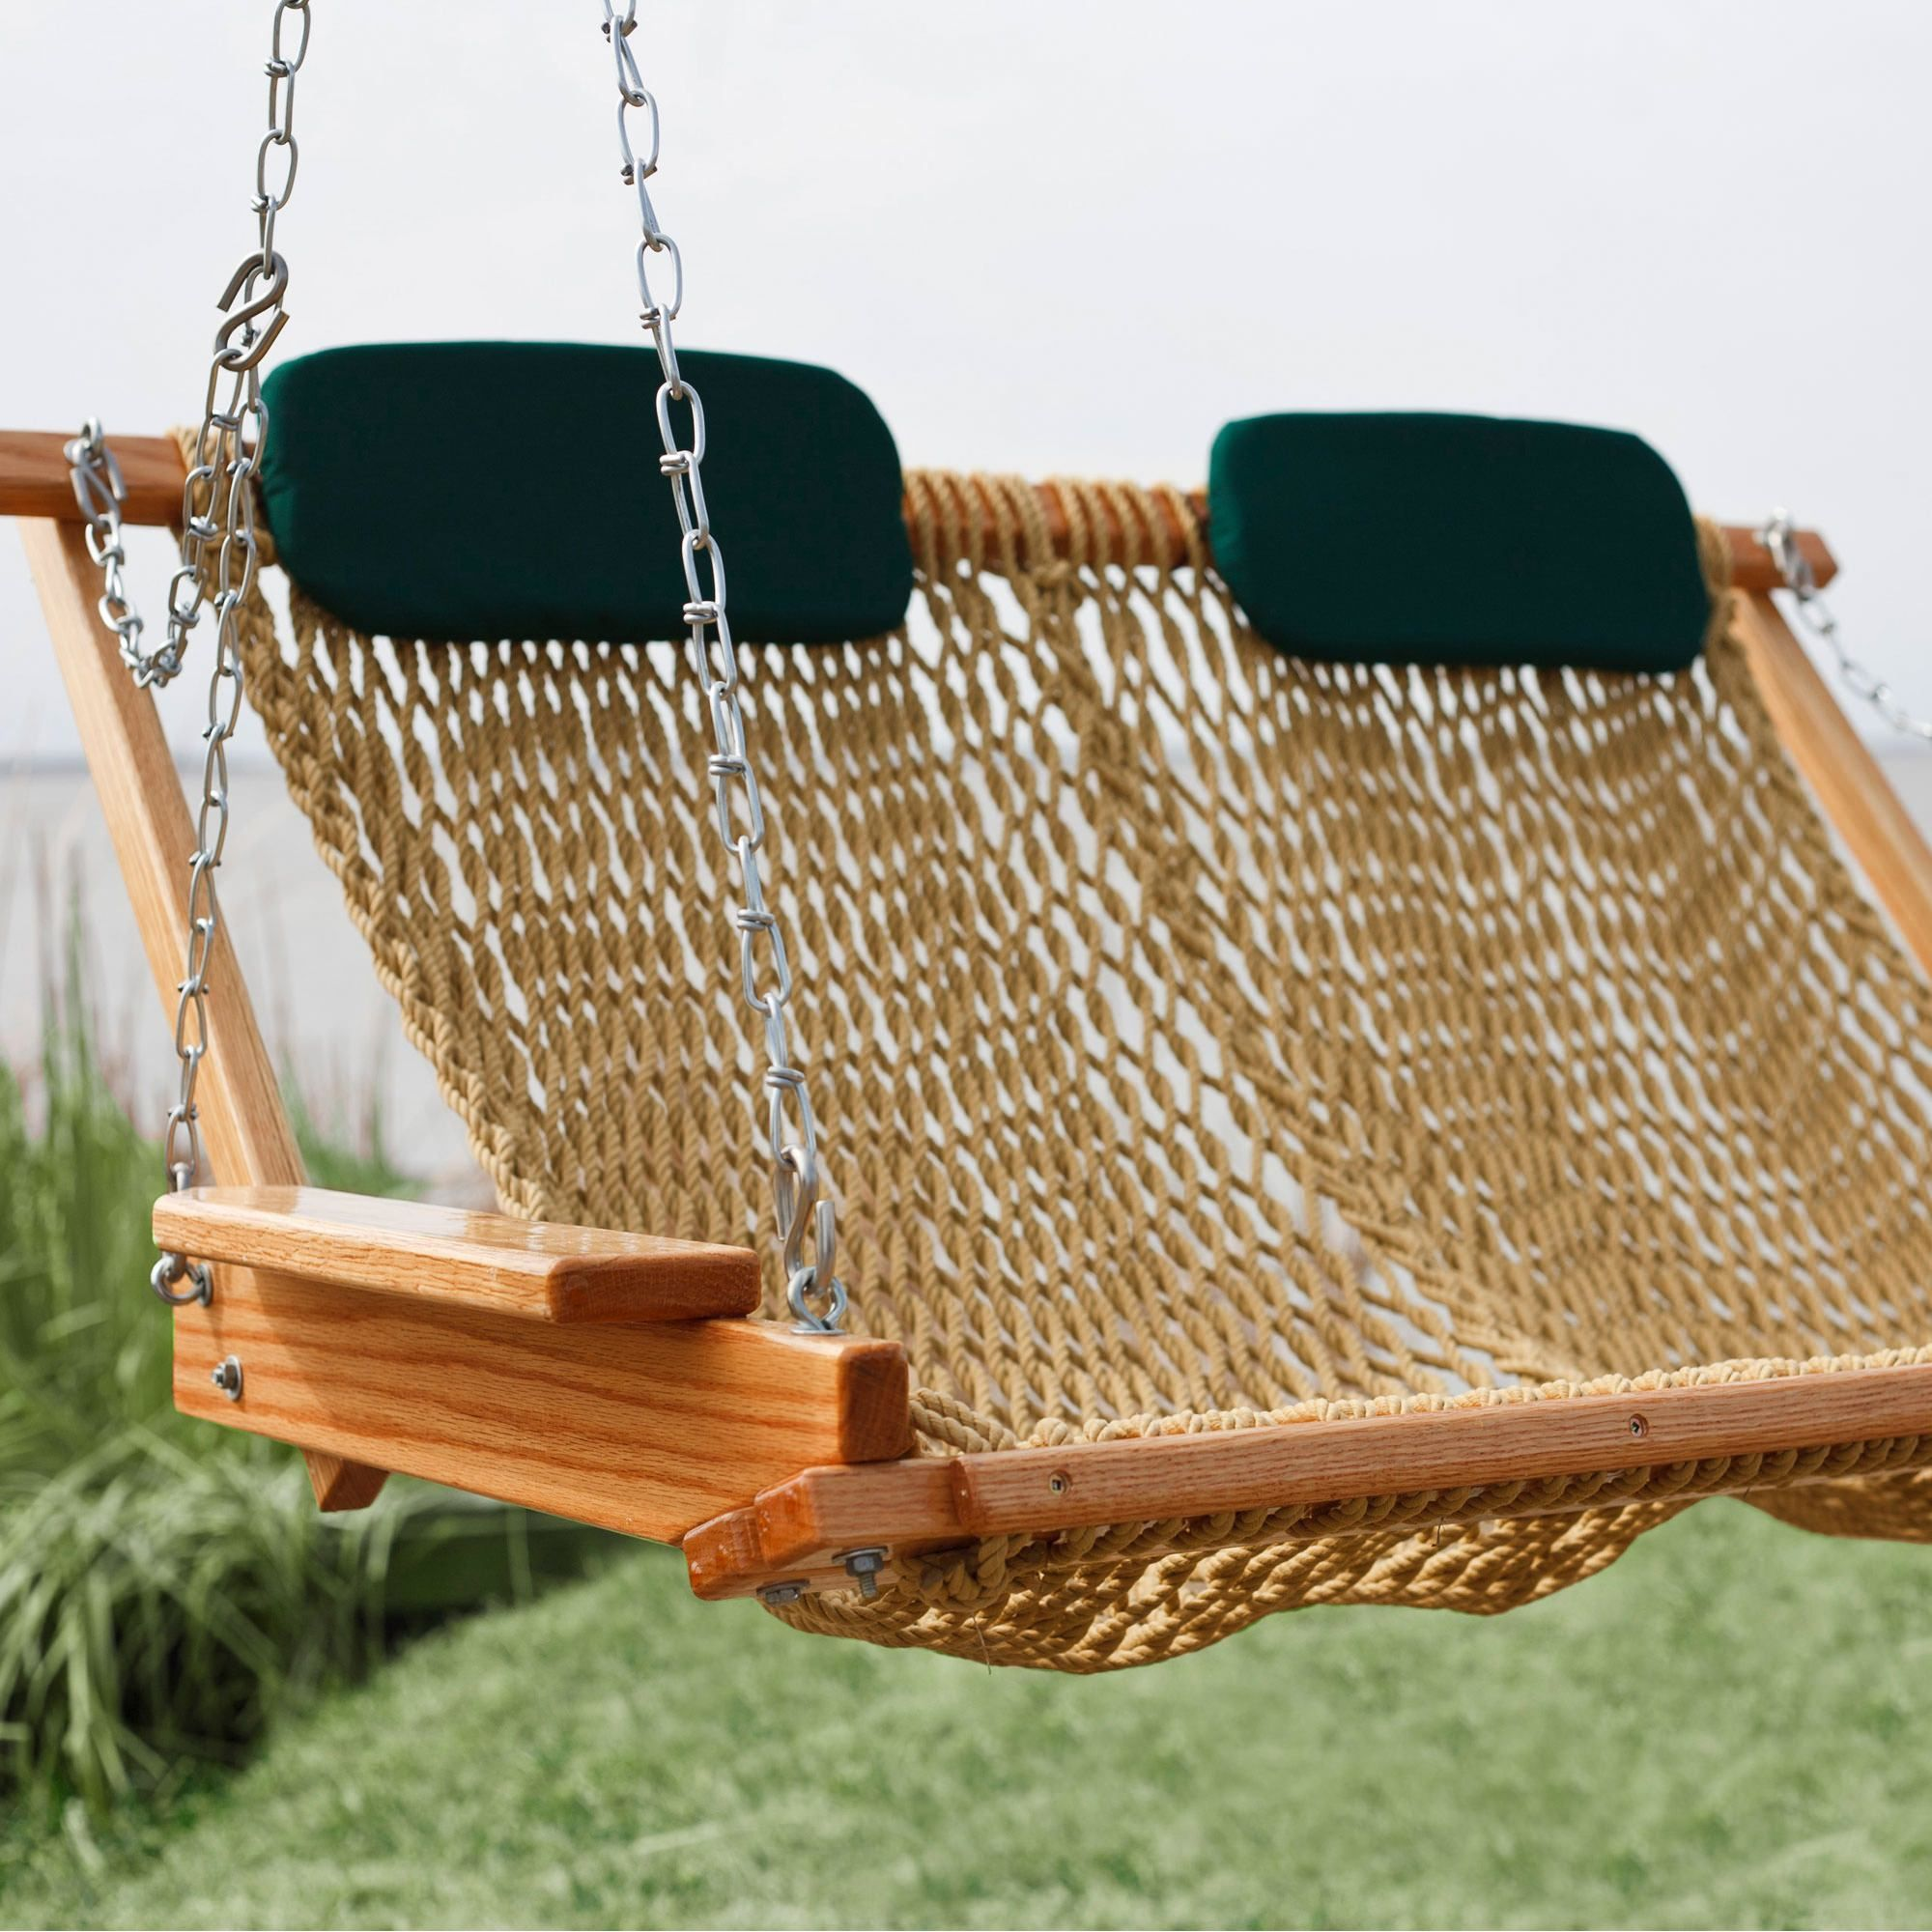 Medium image of shop our full line of nags head hammocks hammock swings inspired by the salt air clear skies and good  pany